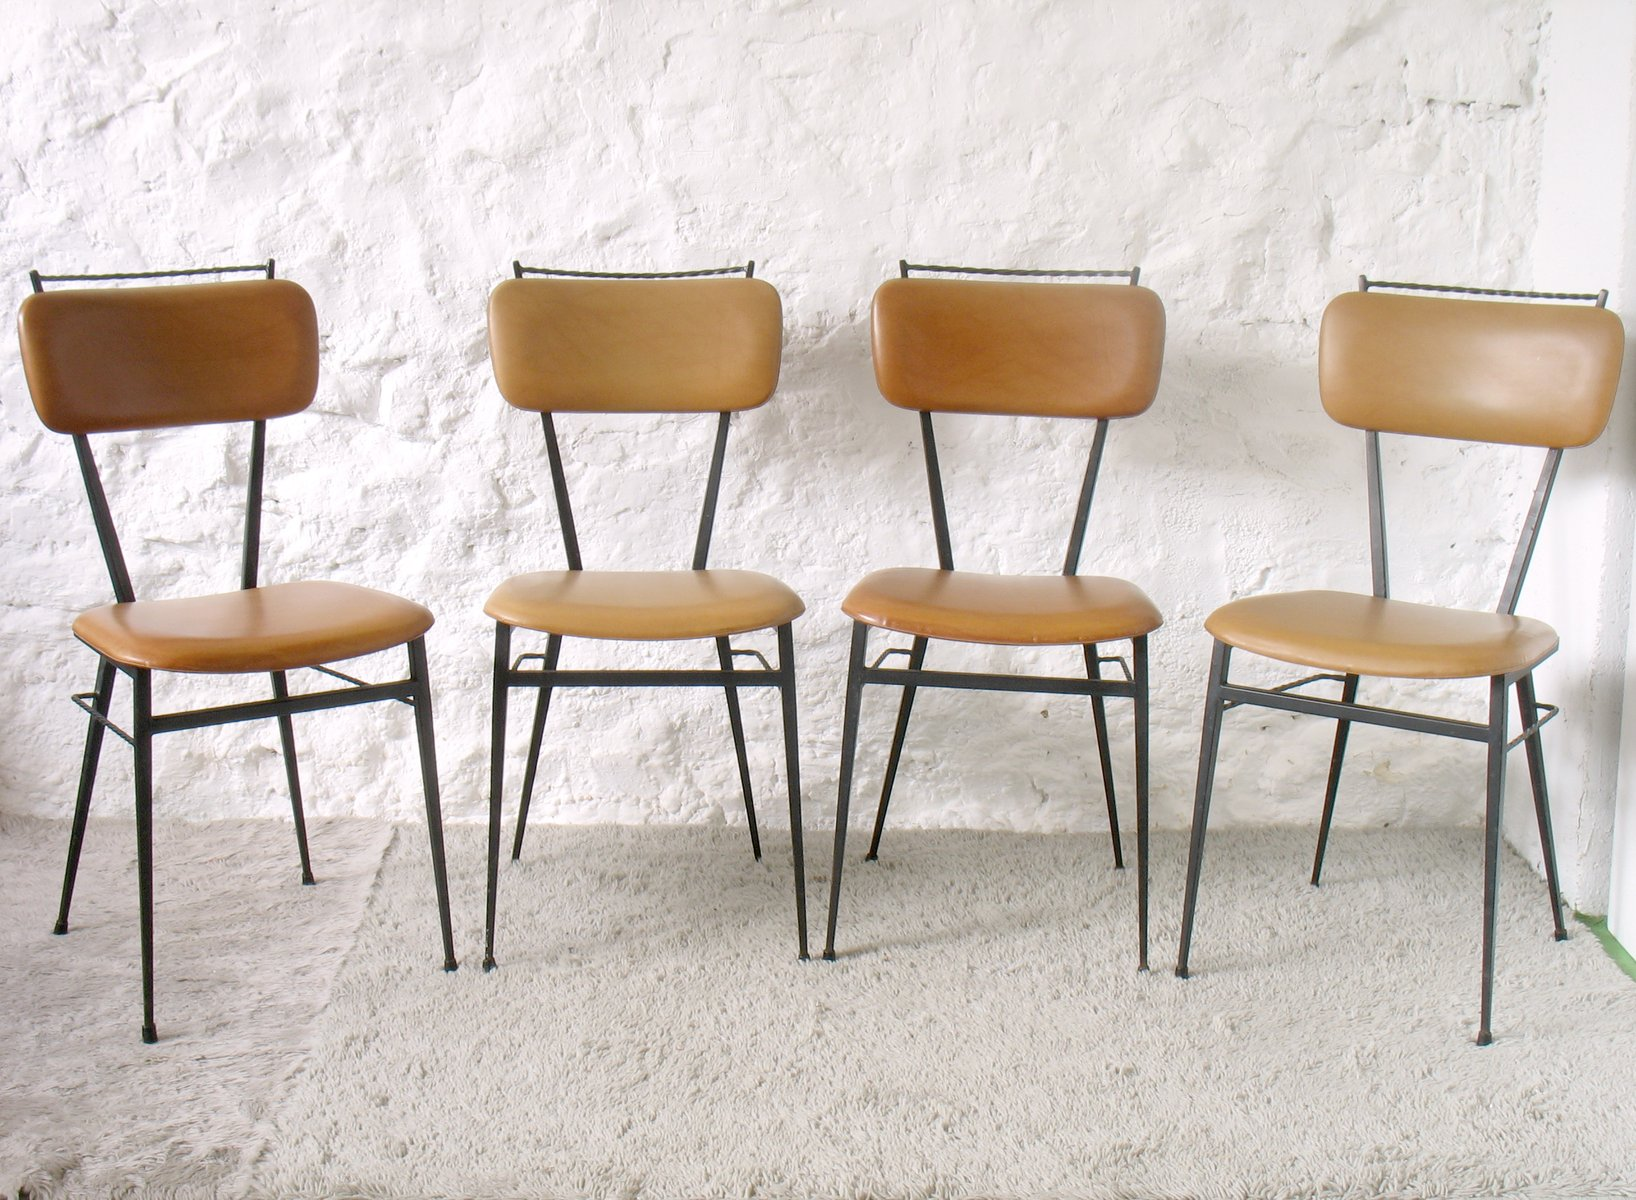 Vintage French Black Metal Chairs from Soudexvinyl 1960s Set of